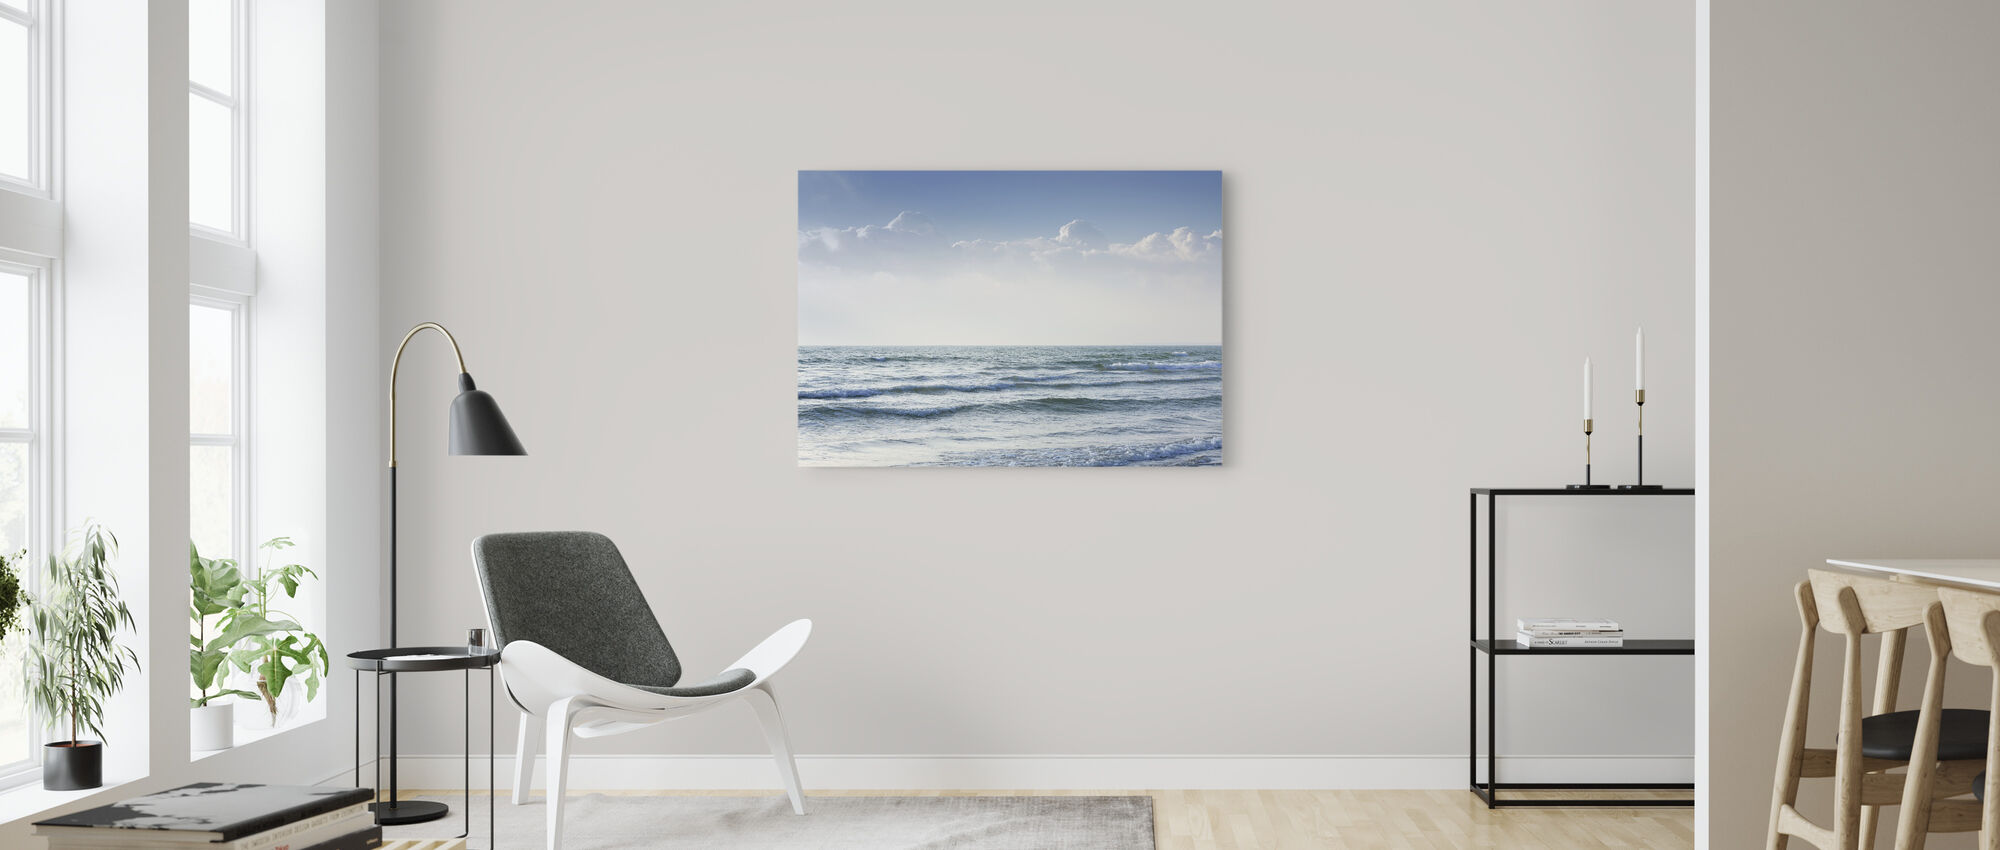 Ocean Waves - Canvas print - Living Room